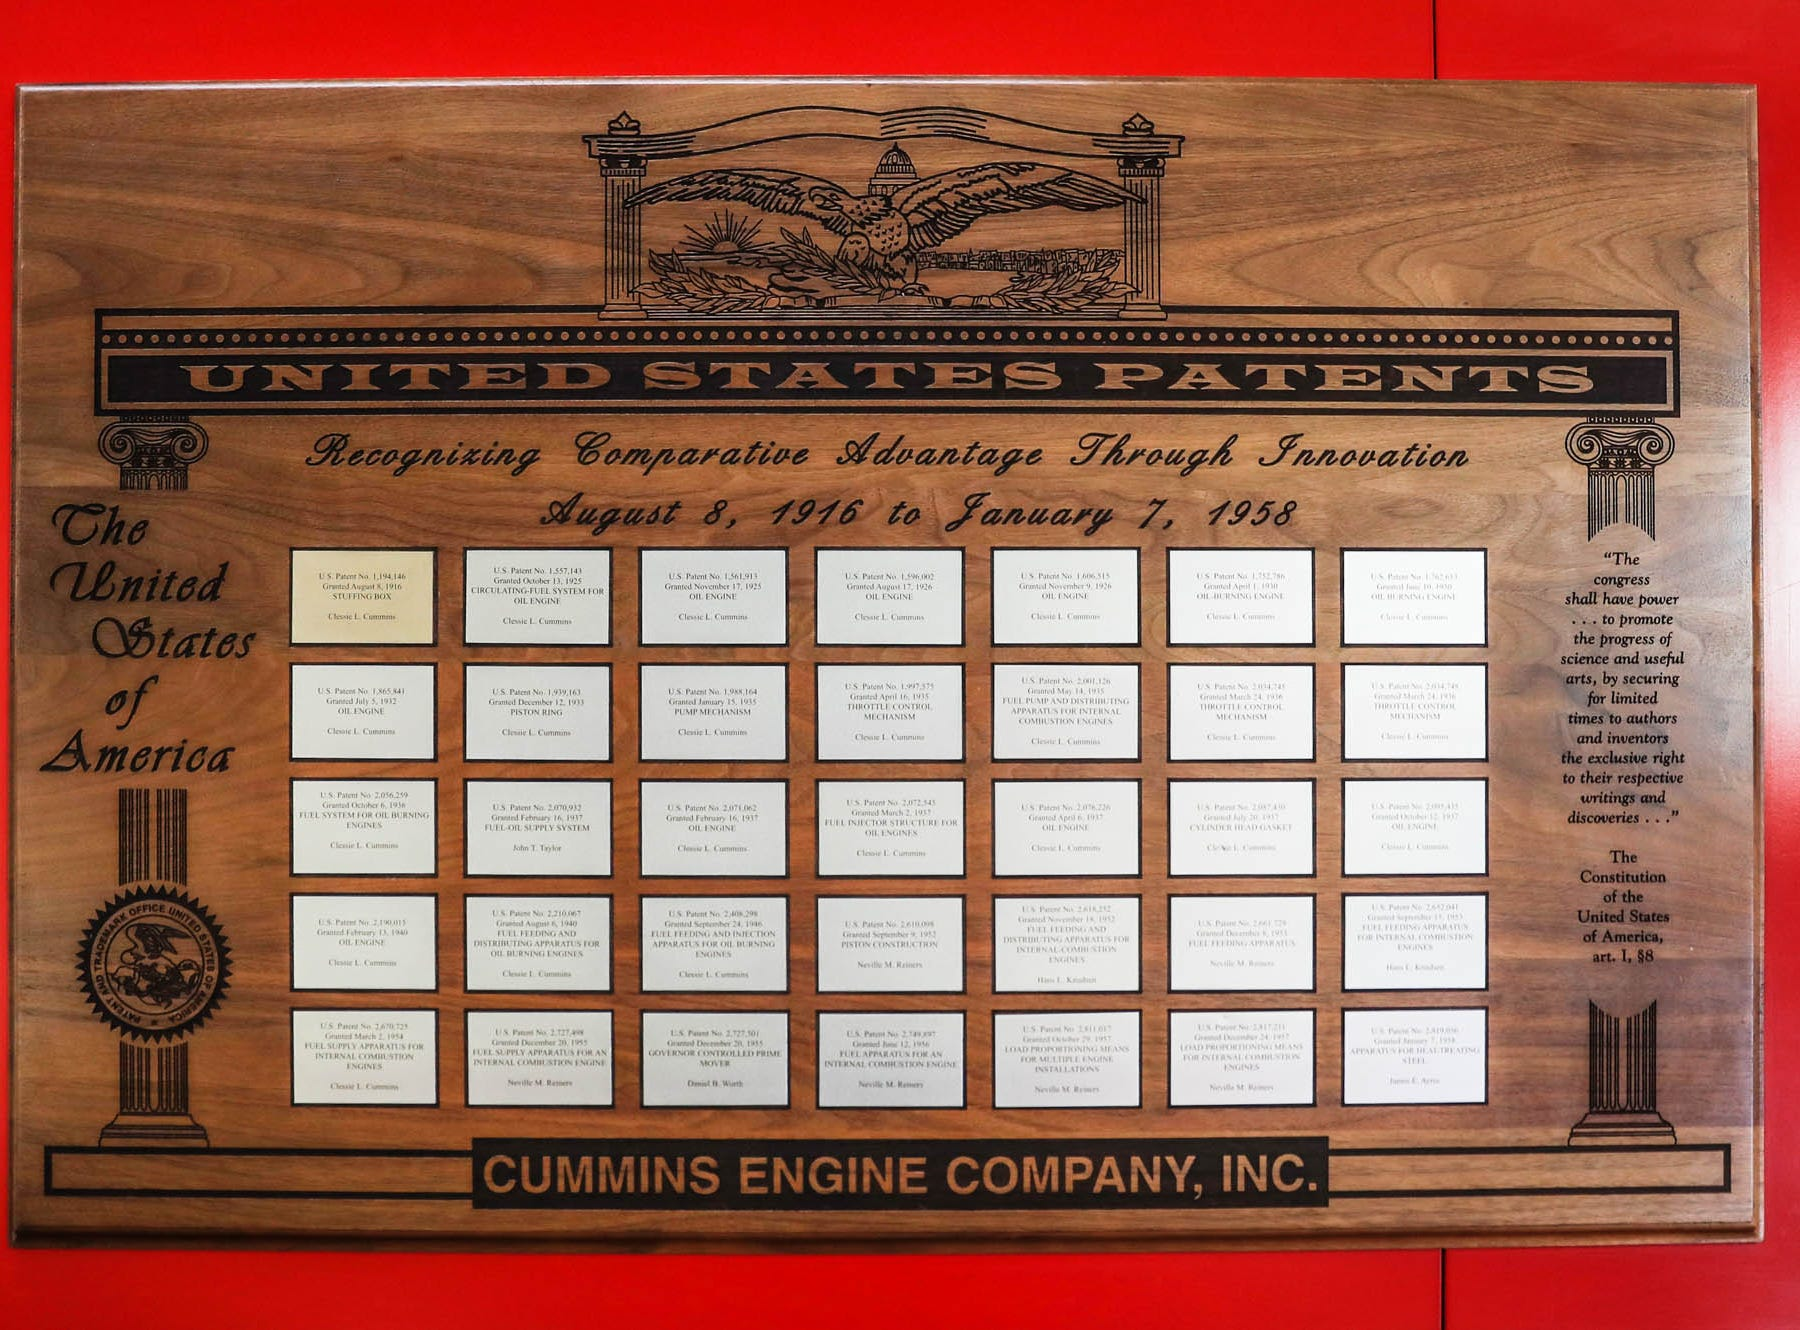 As Cummins Inc. turns 100 years old, the first of 3000 patents held by the company are on display in the Cummins Technical Center, 1900 McKinley Ave, Columbus, Ind., on Monday, Jan. 7, 2018. The patents shown here range from Aug. 8, 1916-Jan.7, 1958.